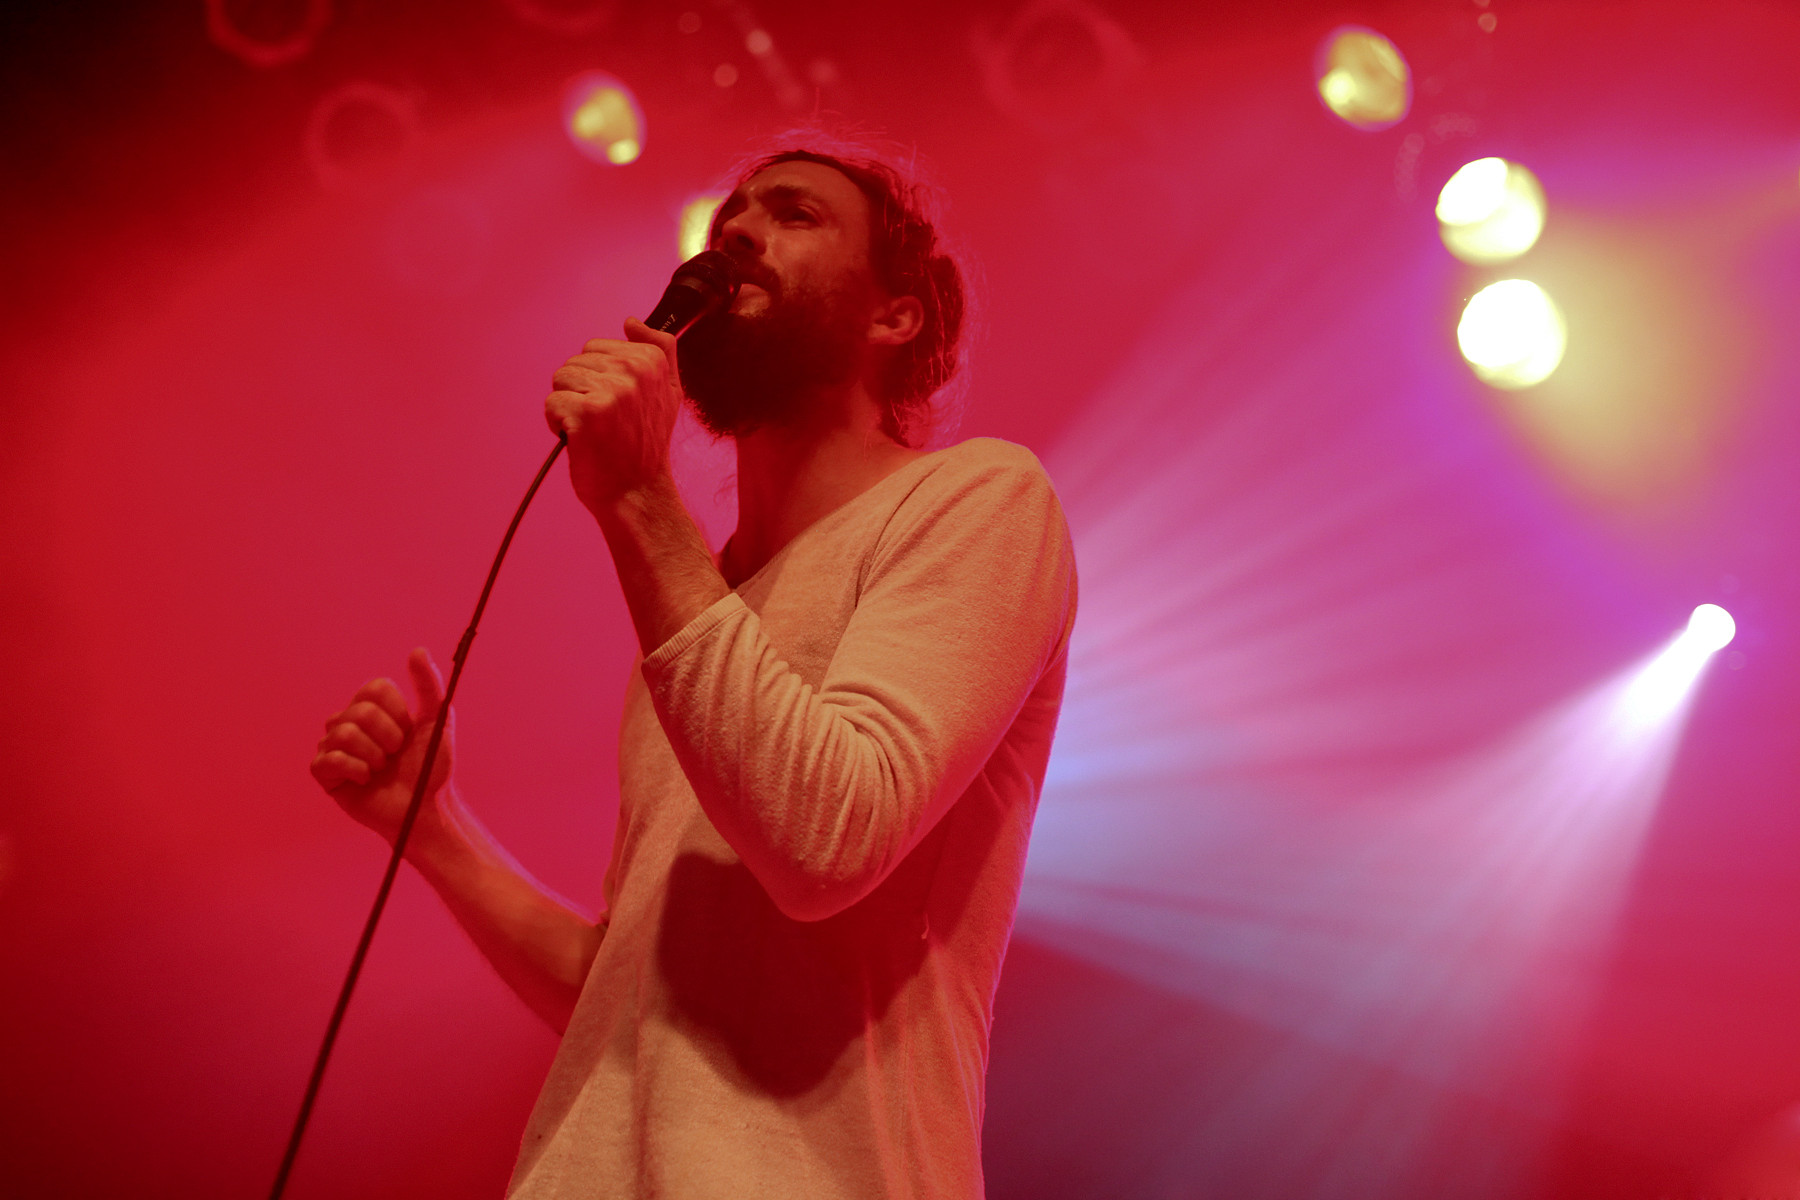 Edward Sharpe & The Magnetic Zeros @ Mod Club